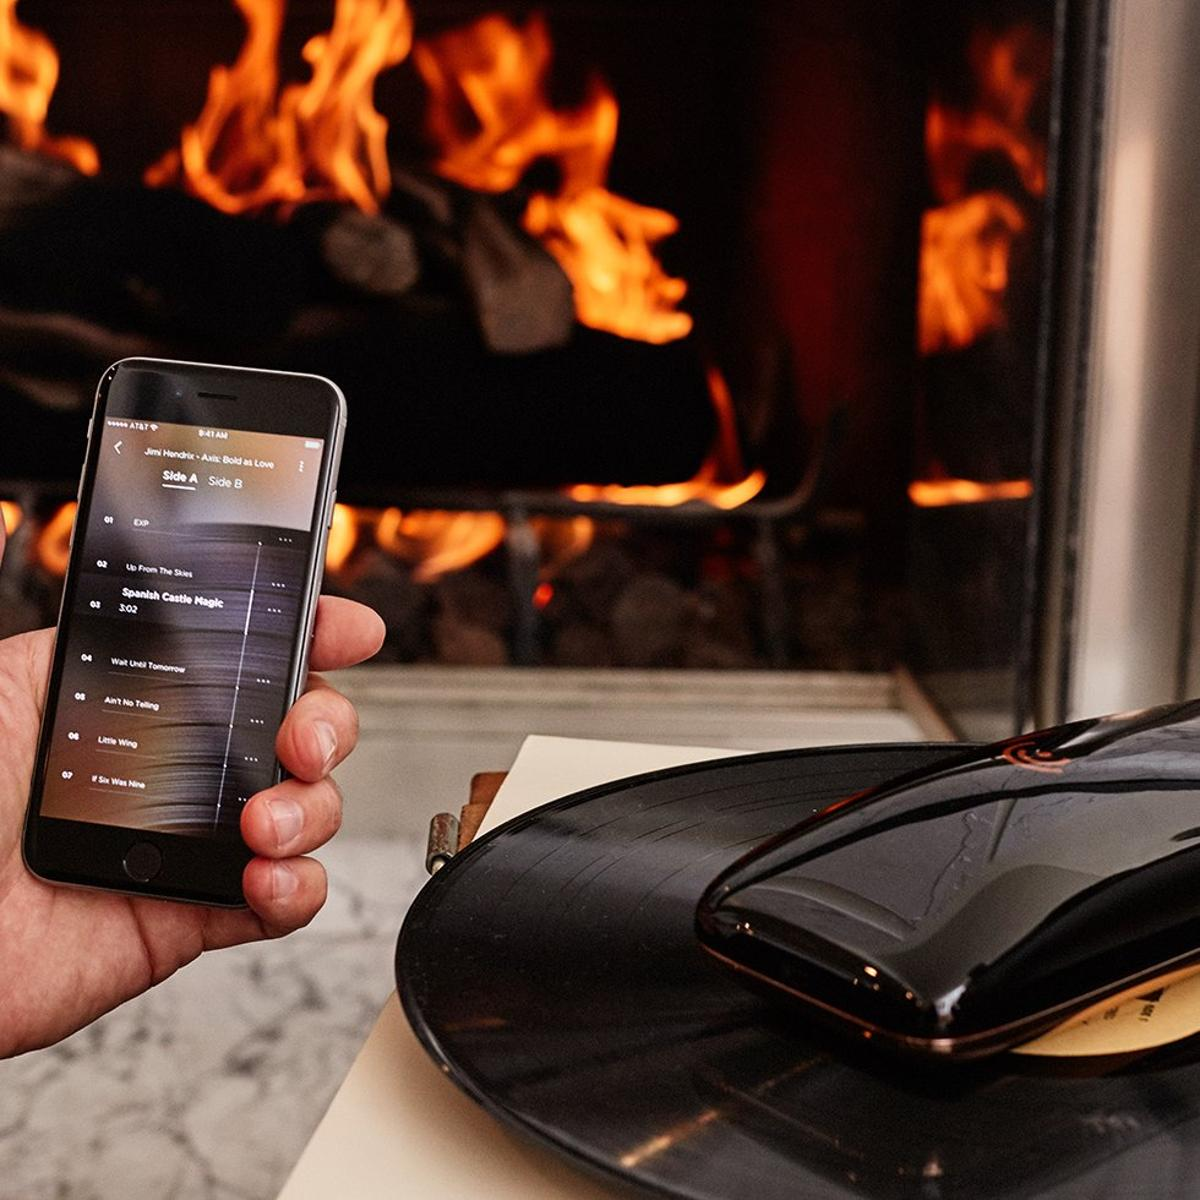 Playback of a vinyl record on the Love systemcan be controlled manually orthrough a companion app running on a mobile device